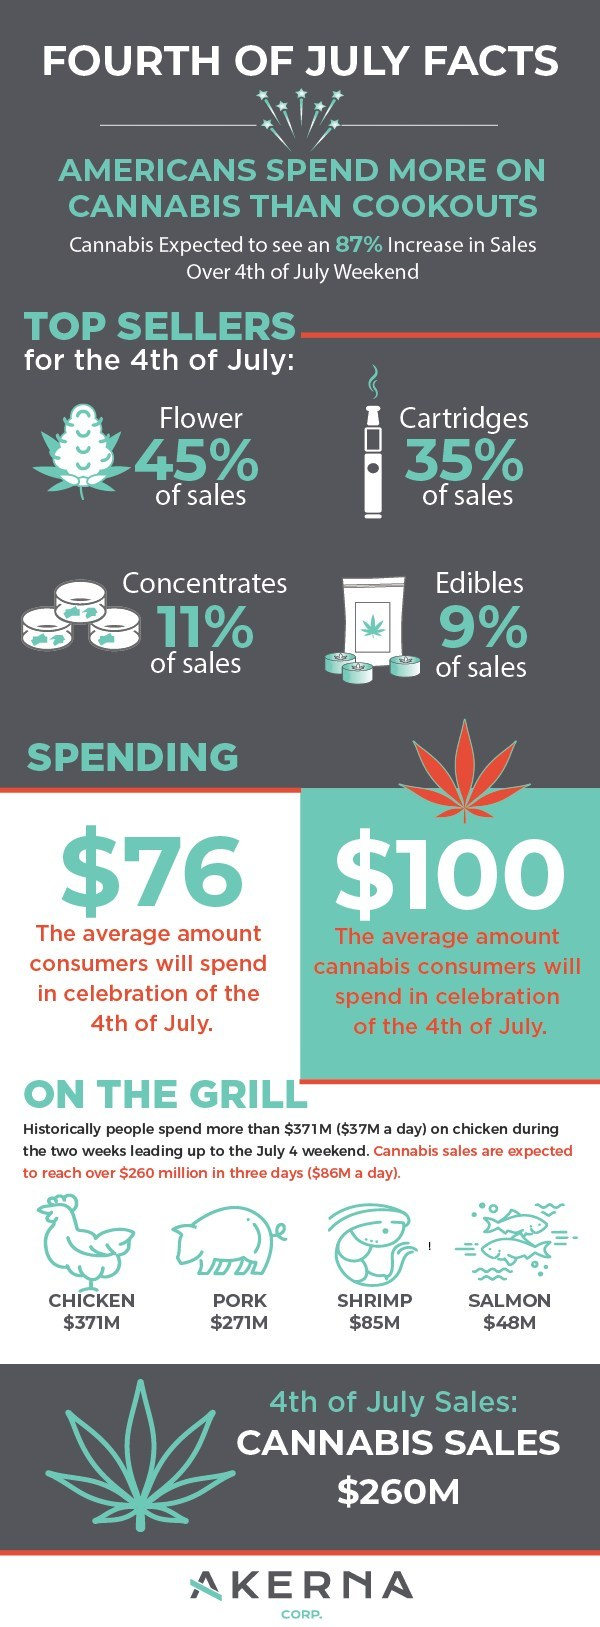 American's will spend more on cannabis than cookouts